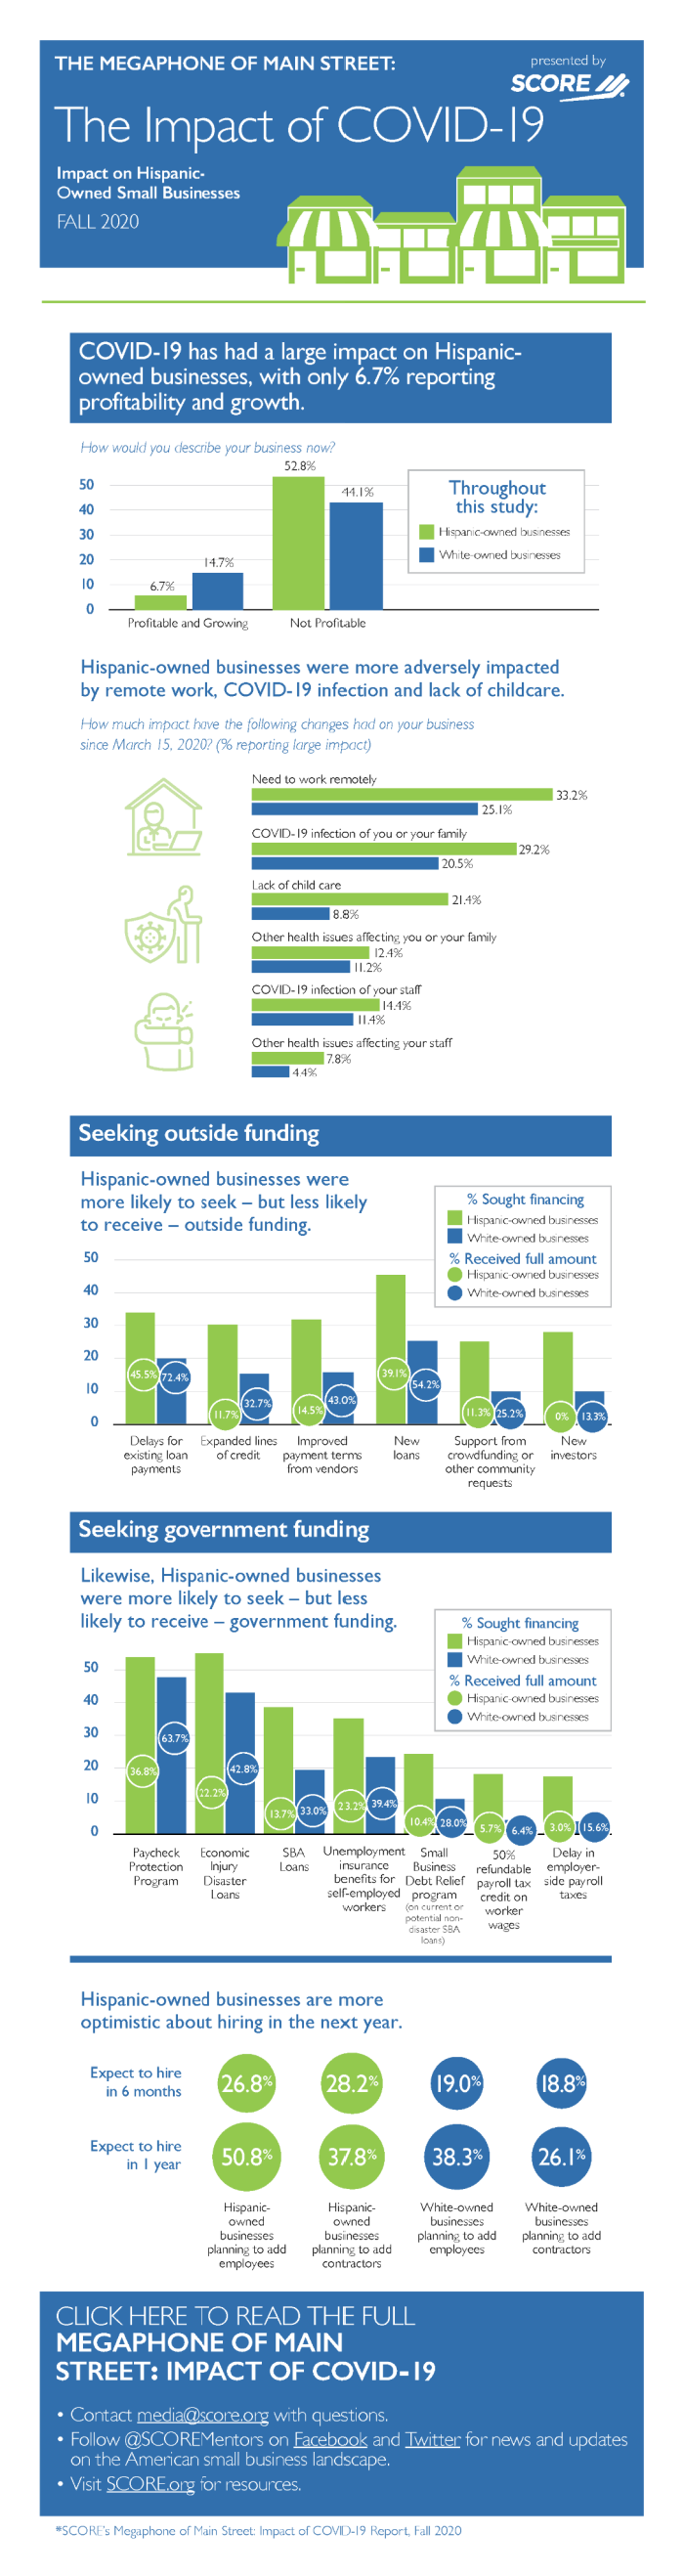 The Megaphone Of Main Street: The Impact of Covid-19, Infographic #1 - Impact on Hispanic-owned Small Businesses